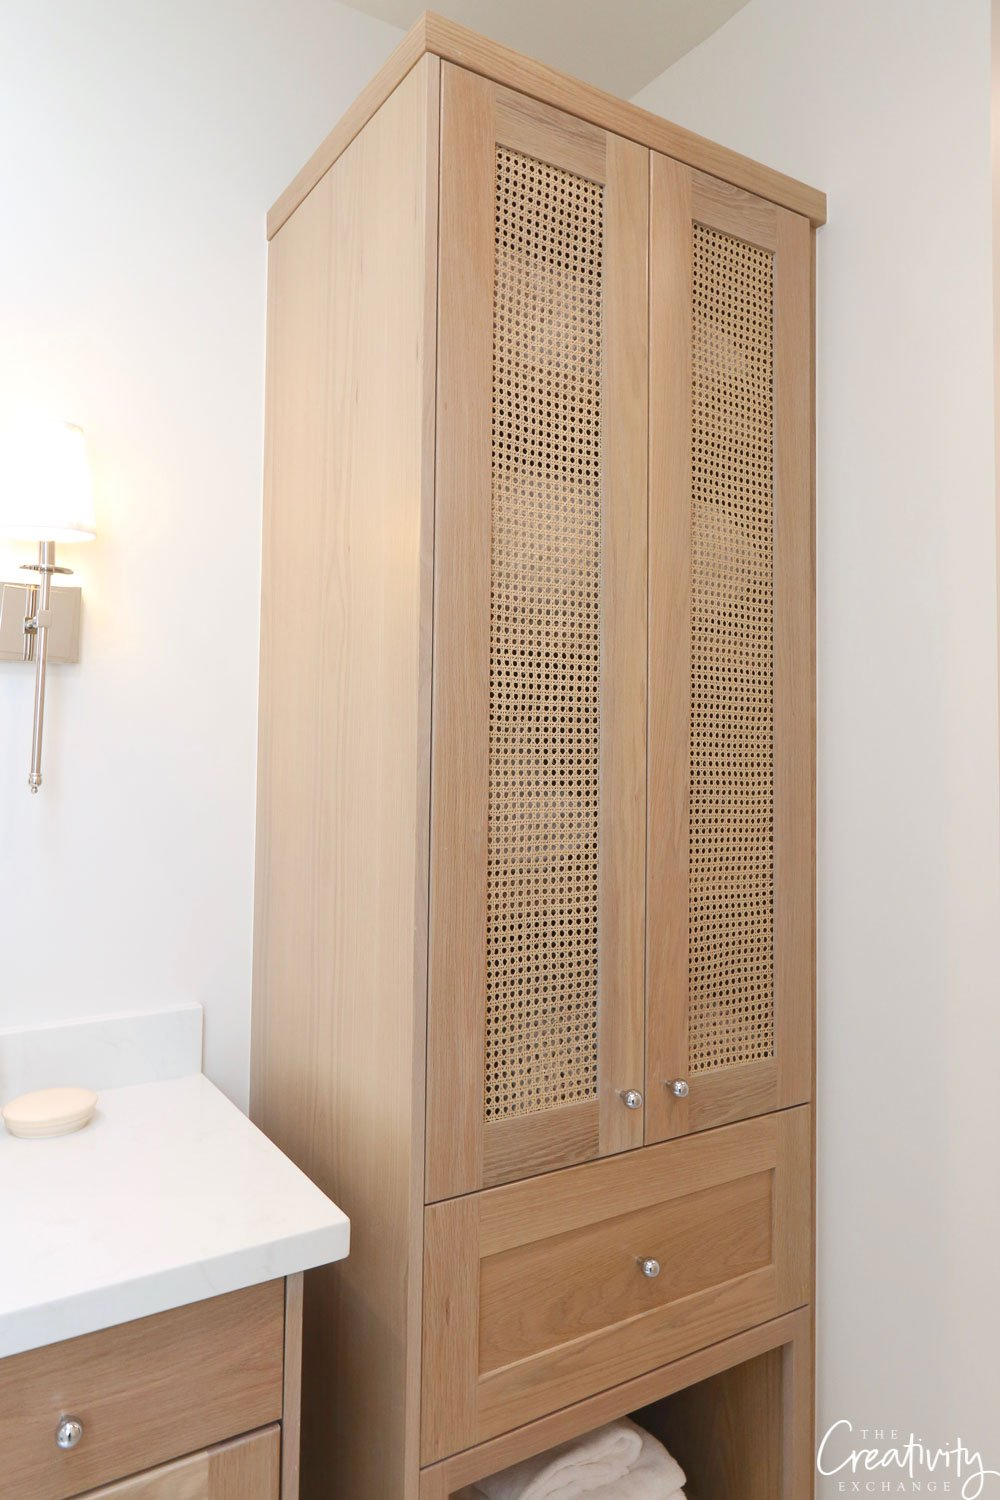 Oak bathroom cabinetry